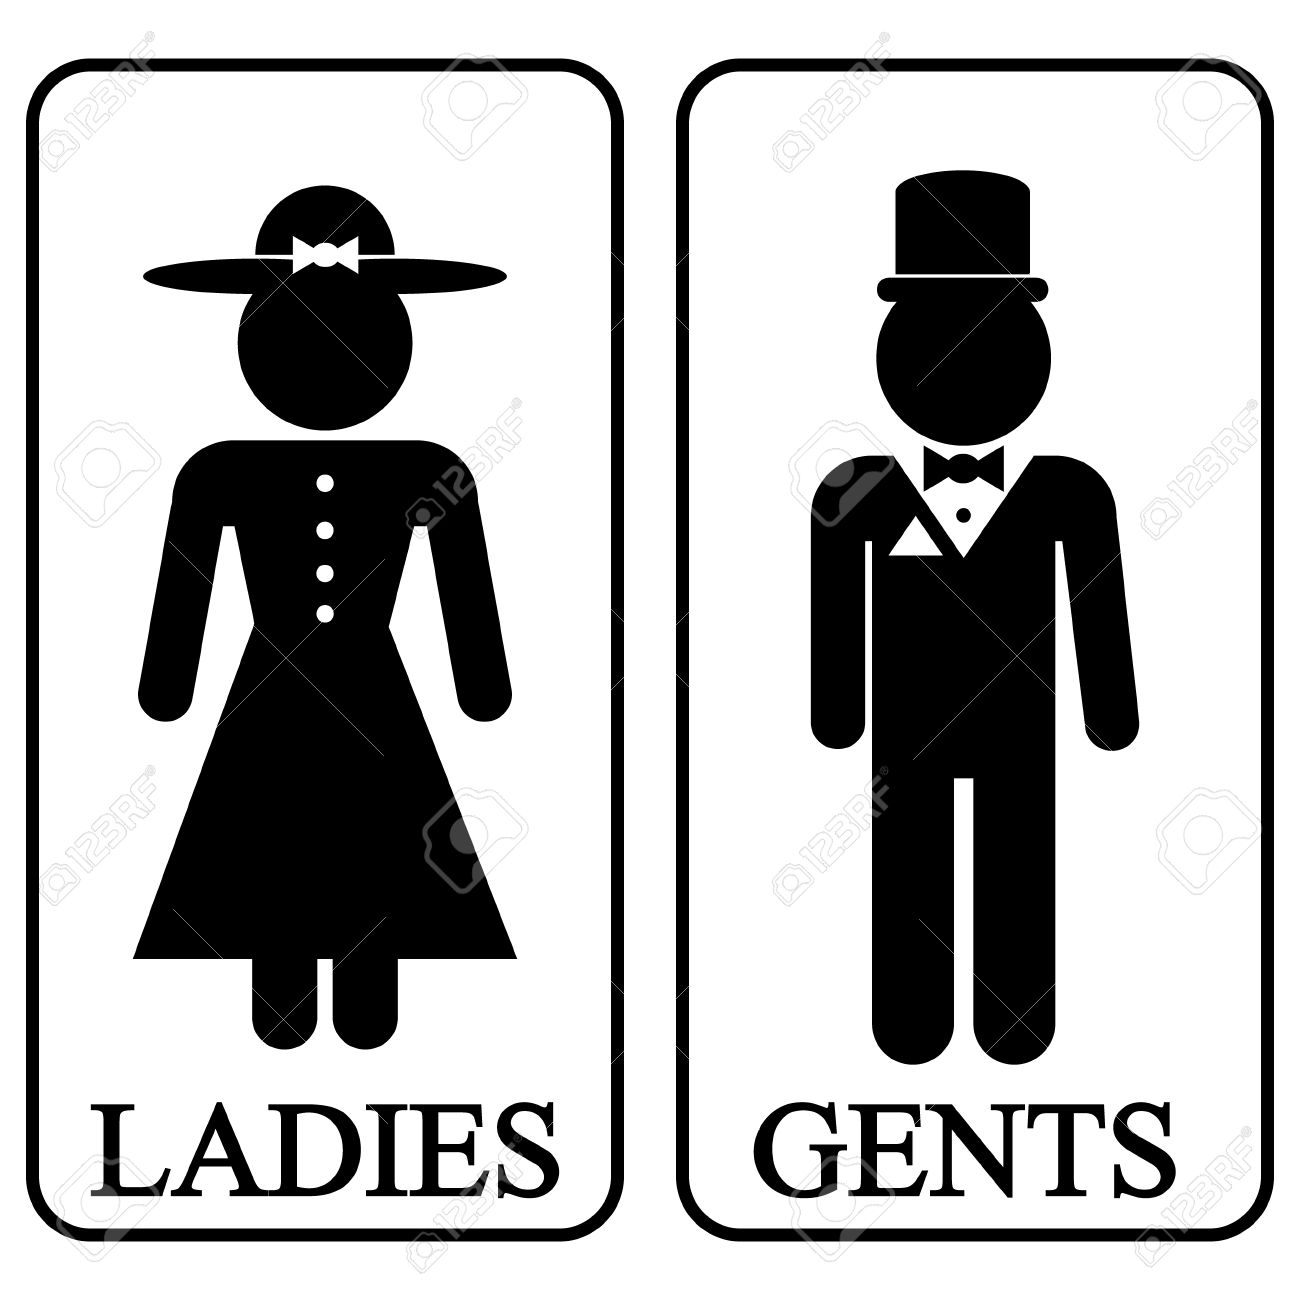 Icons Of Men And Women In Retro Style Vector Illustration